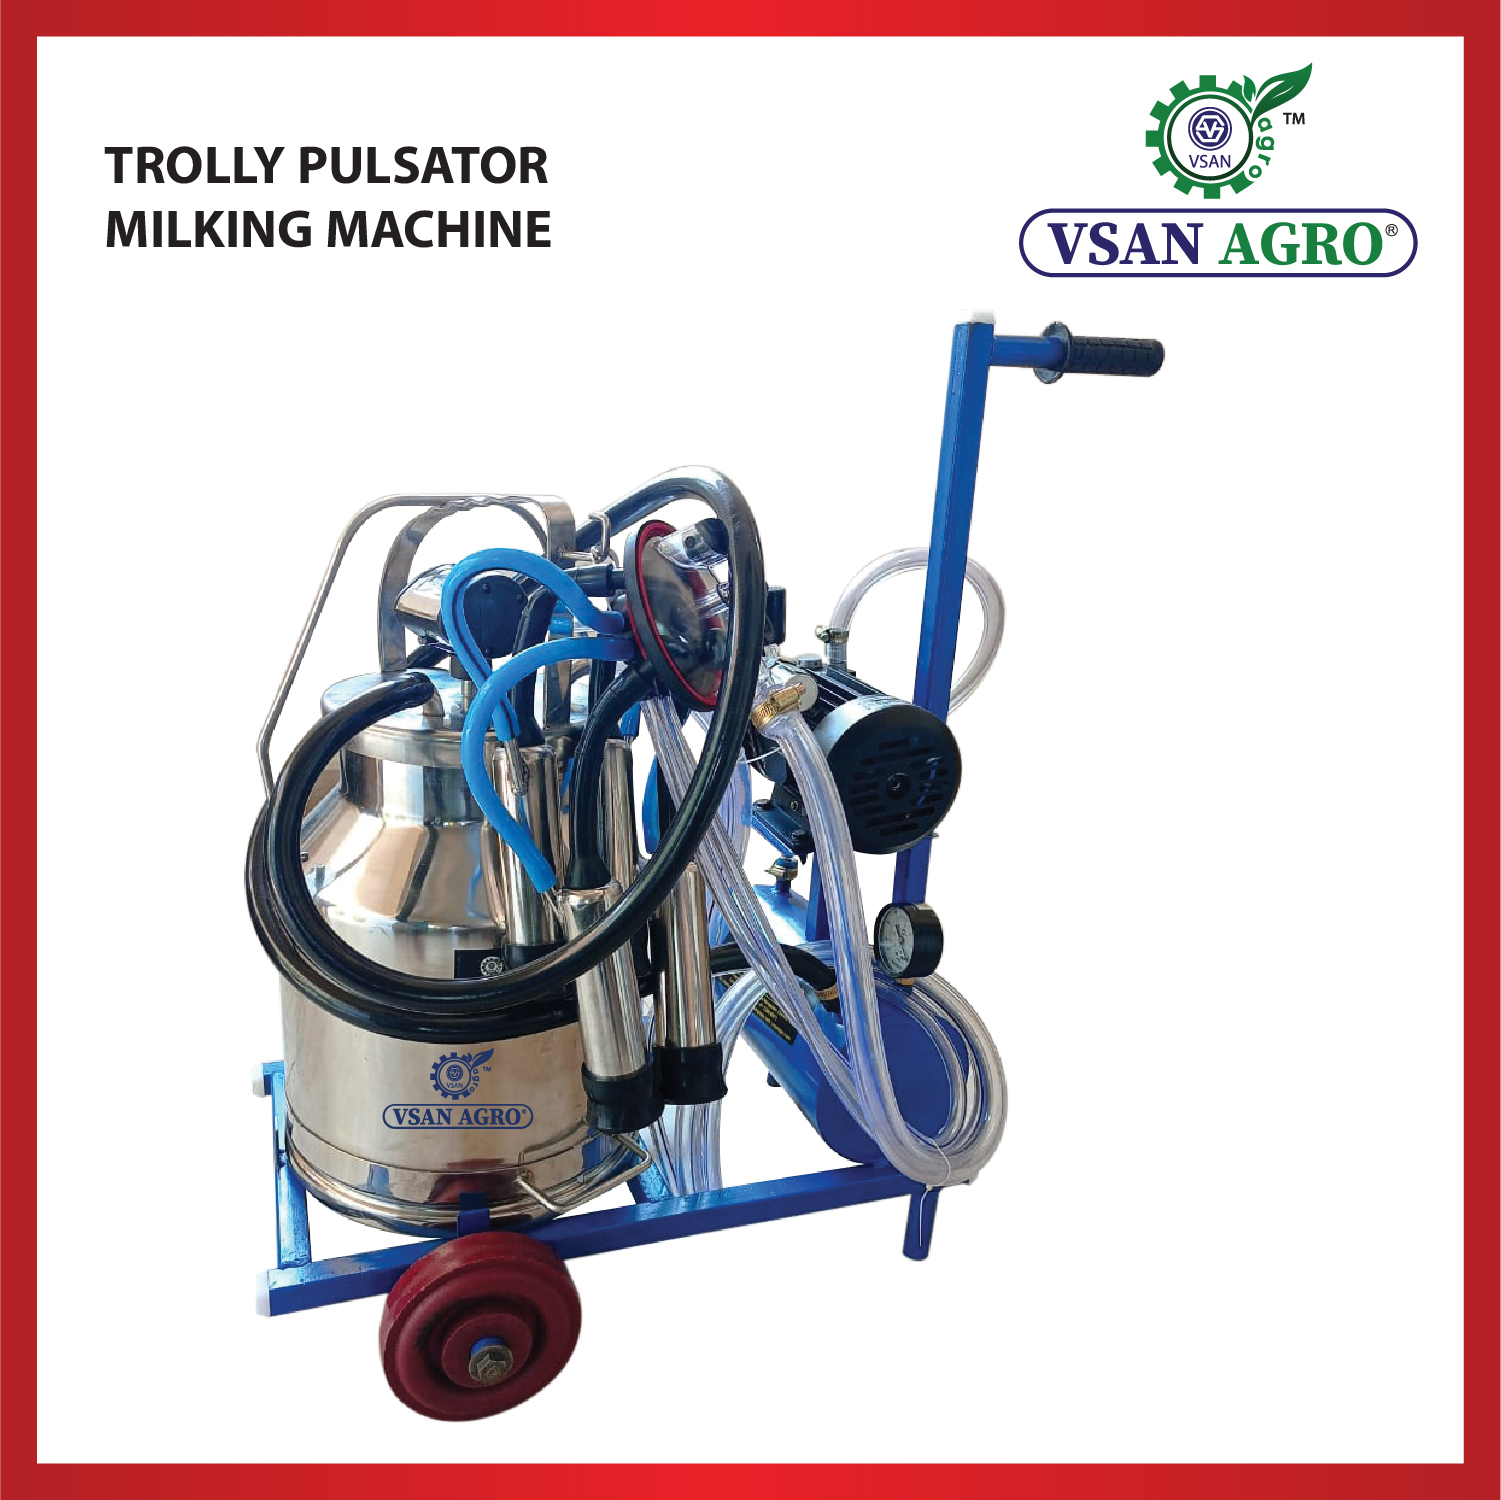 Pulsator  Milking Machine with Trolley